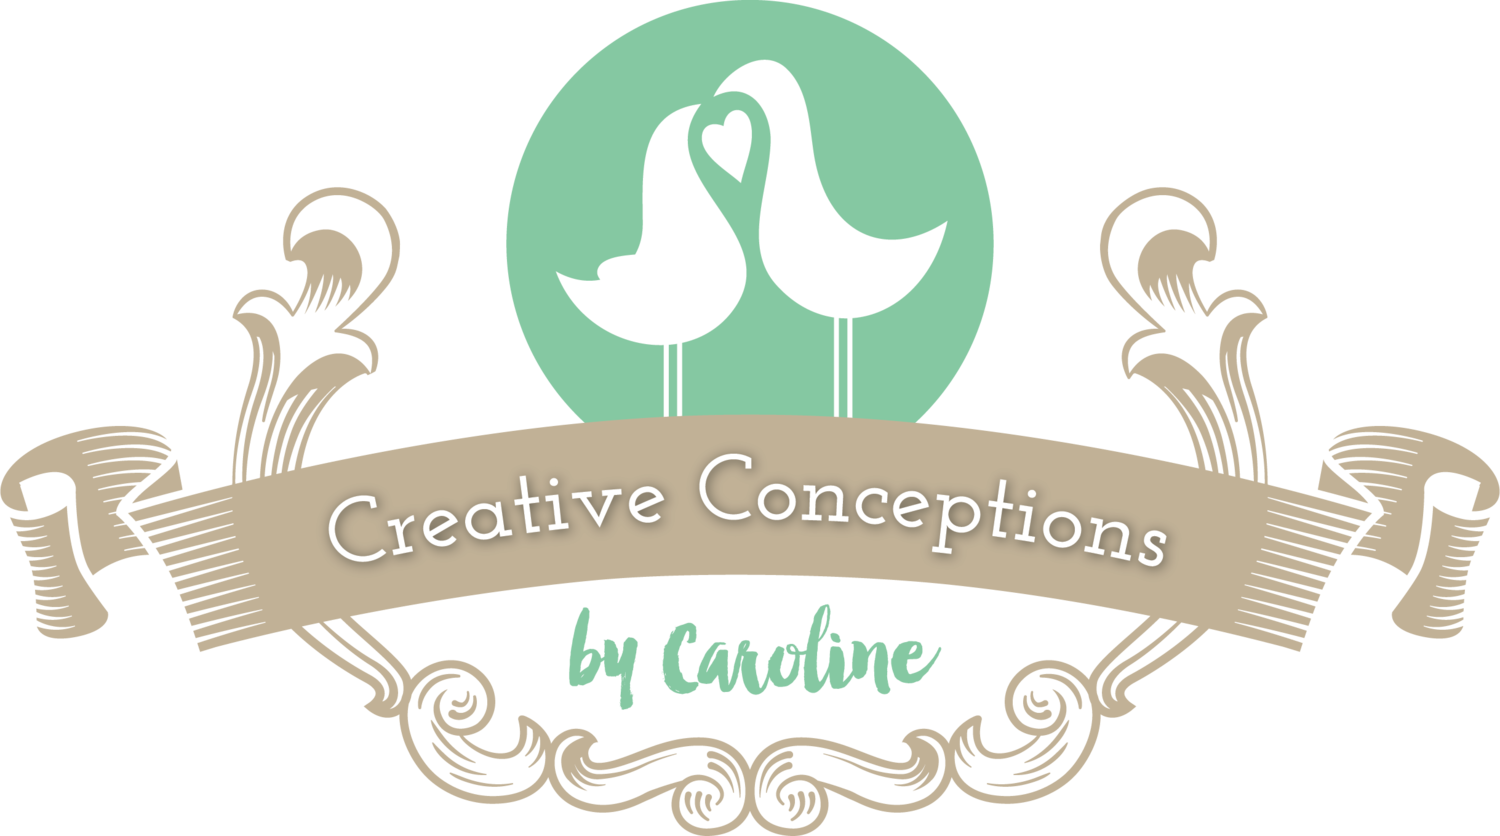 Creative Conceptions by Caroline